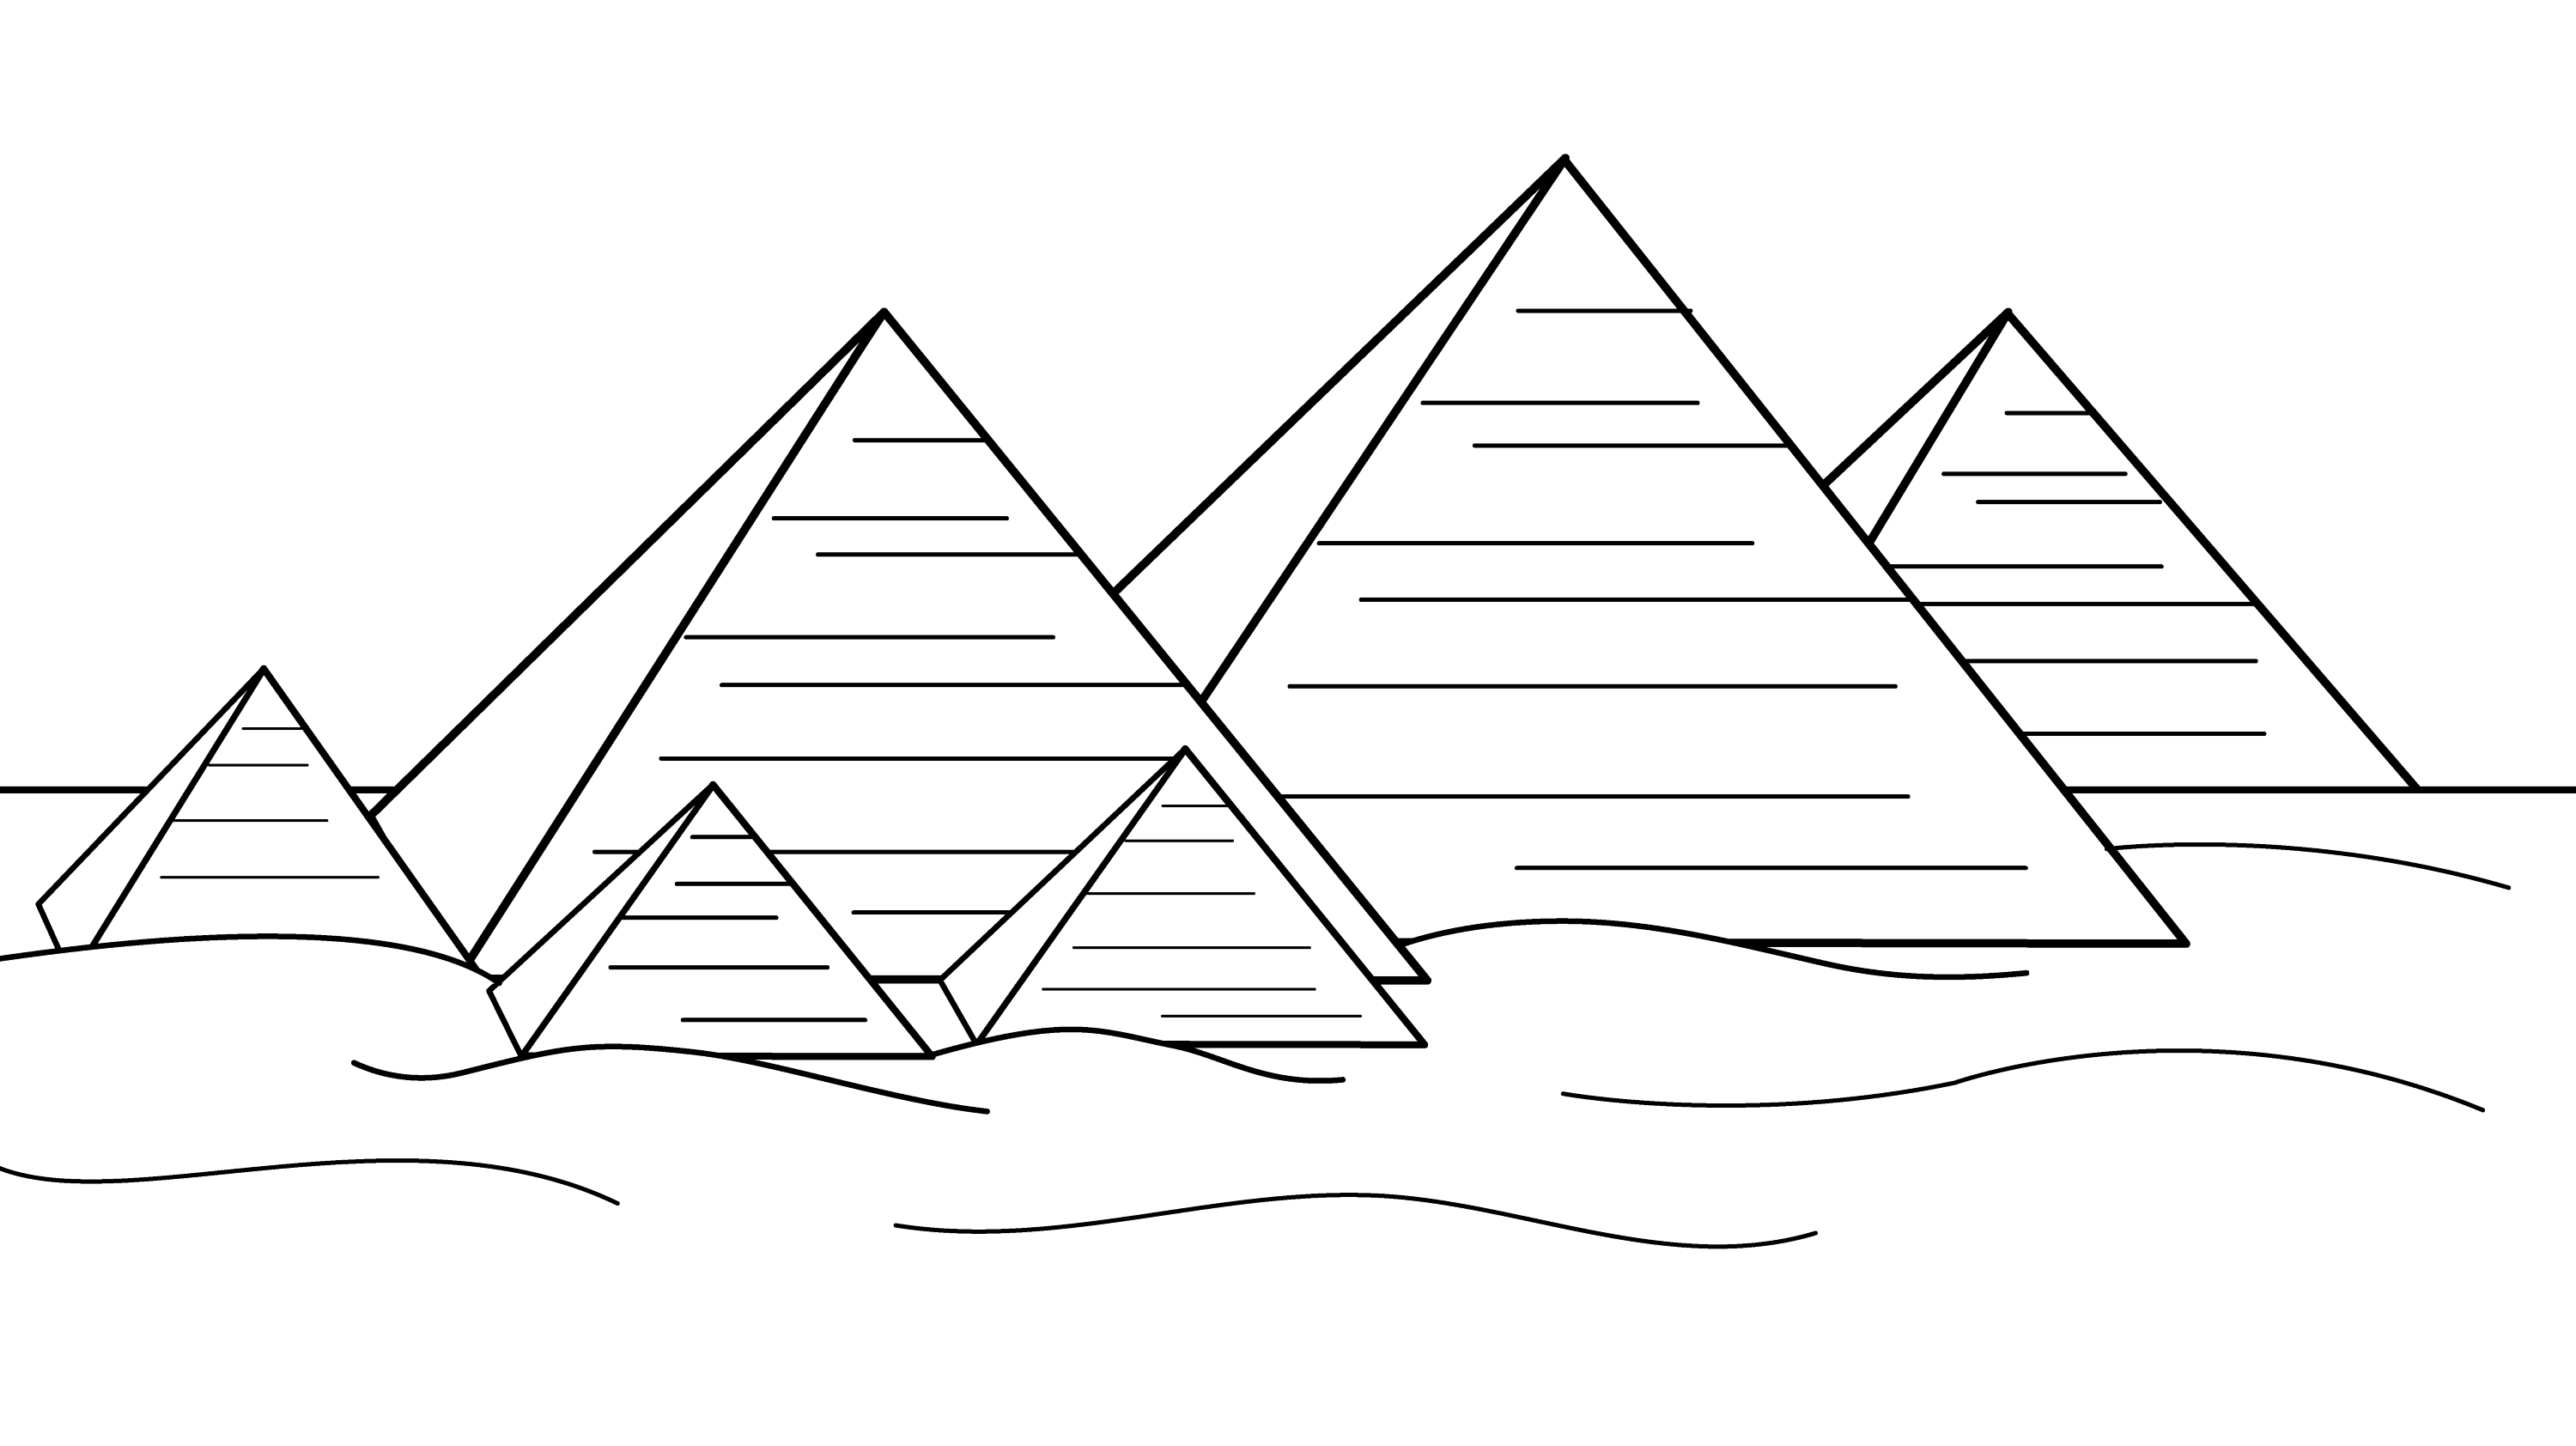 Egyptian Pyramids Colouring Pages | Coloring Pages